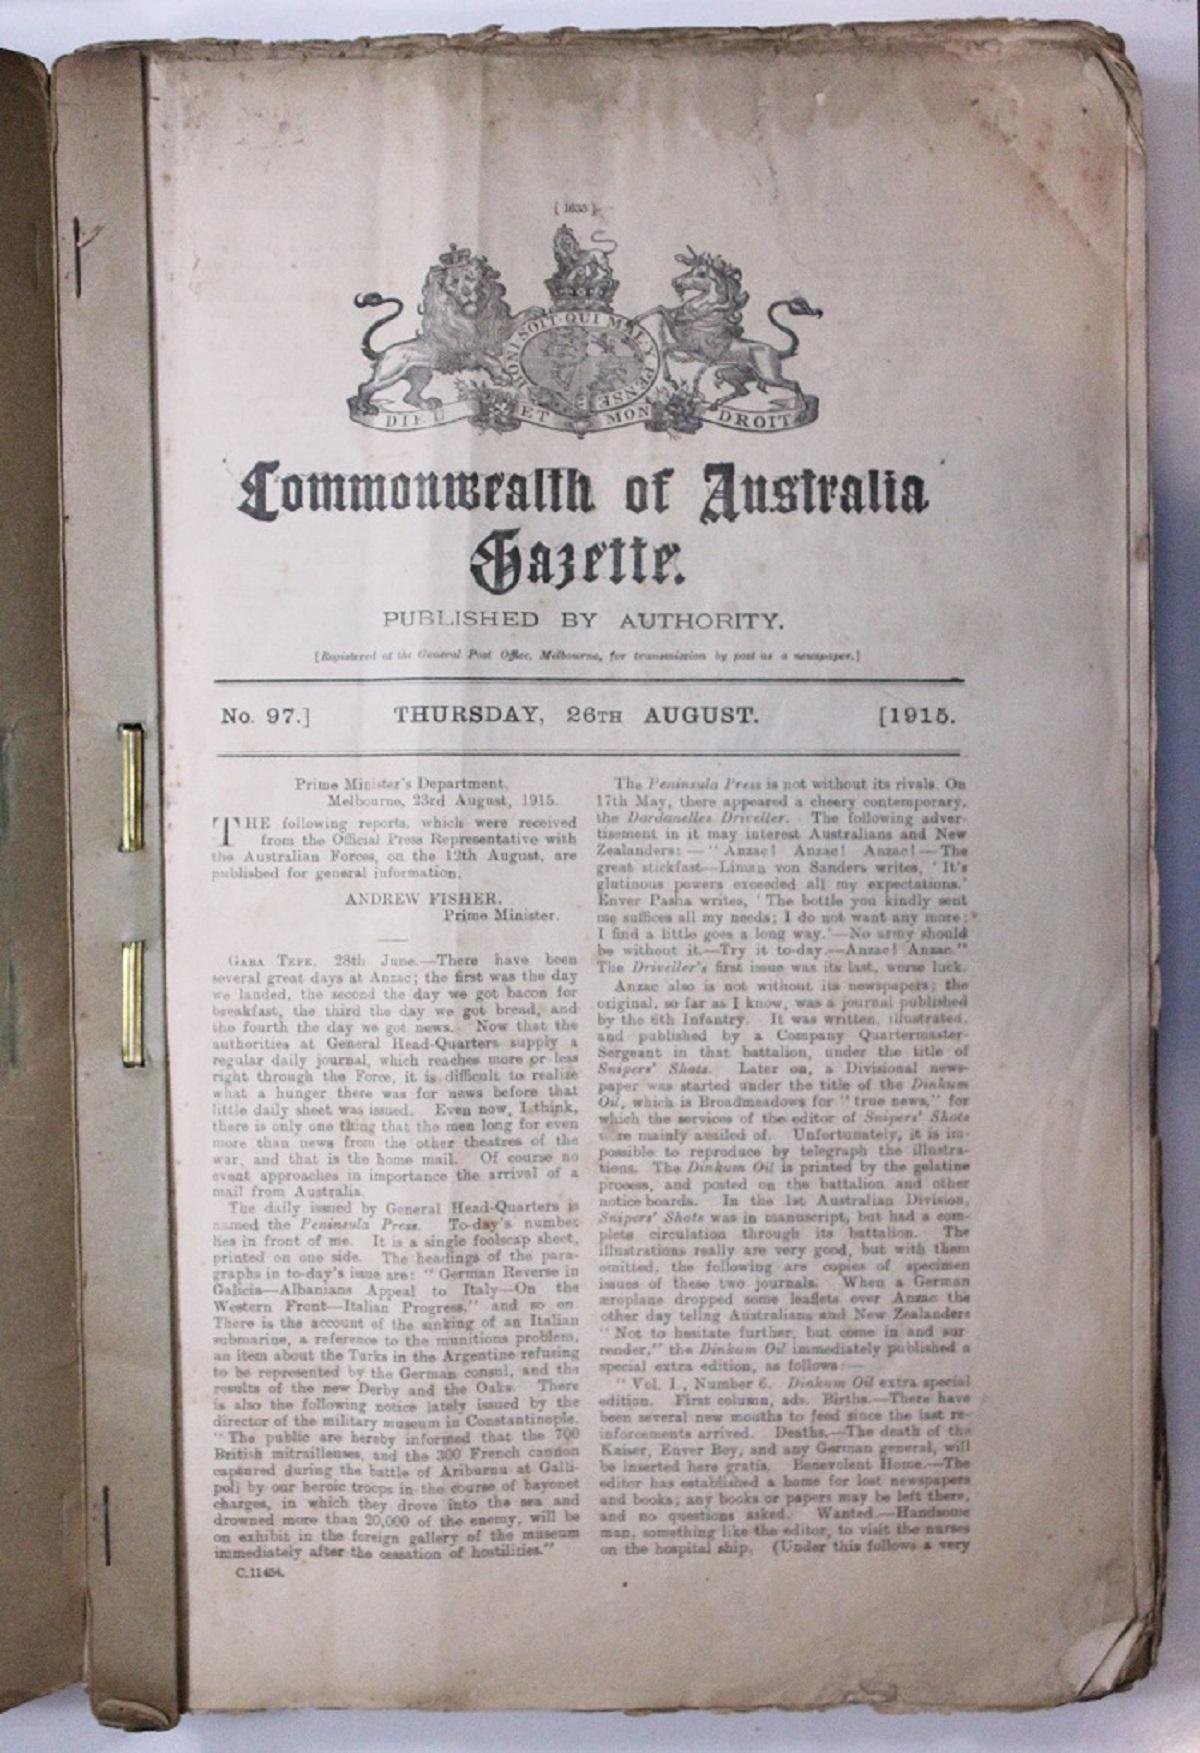 WWI Australia. Copies of the 'Commonwealth of Australia Gazette' spanning the period Thursday, 26th August 1915 to Friday, 17th May 1918